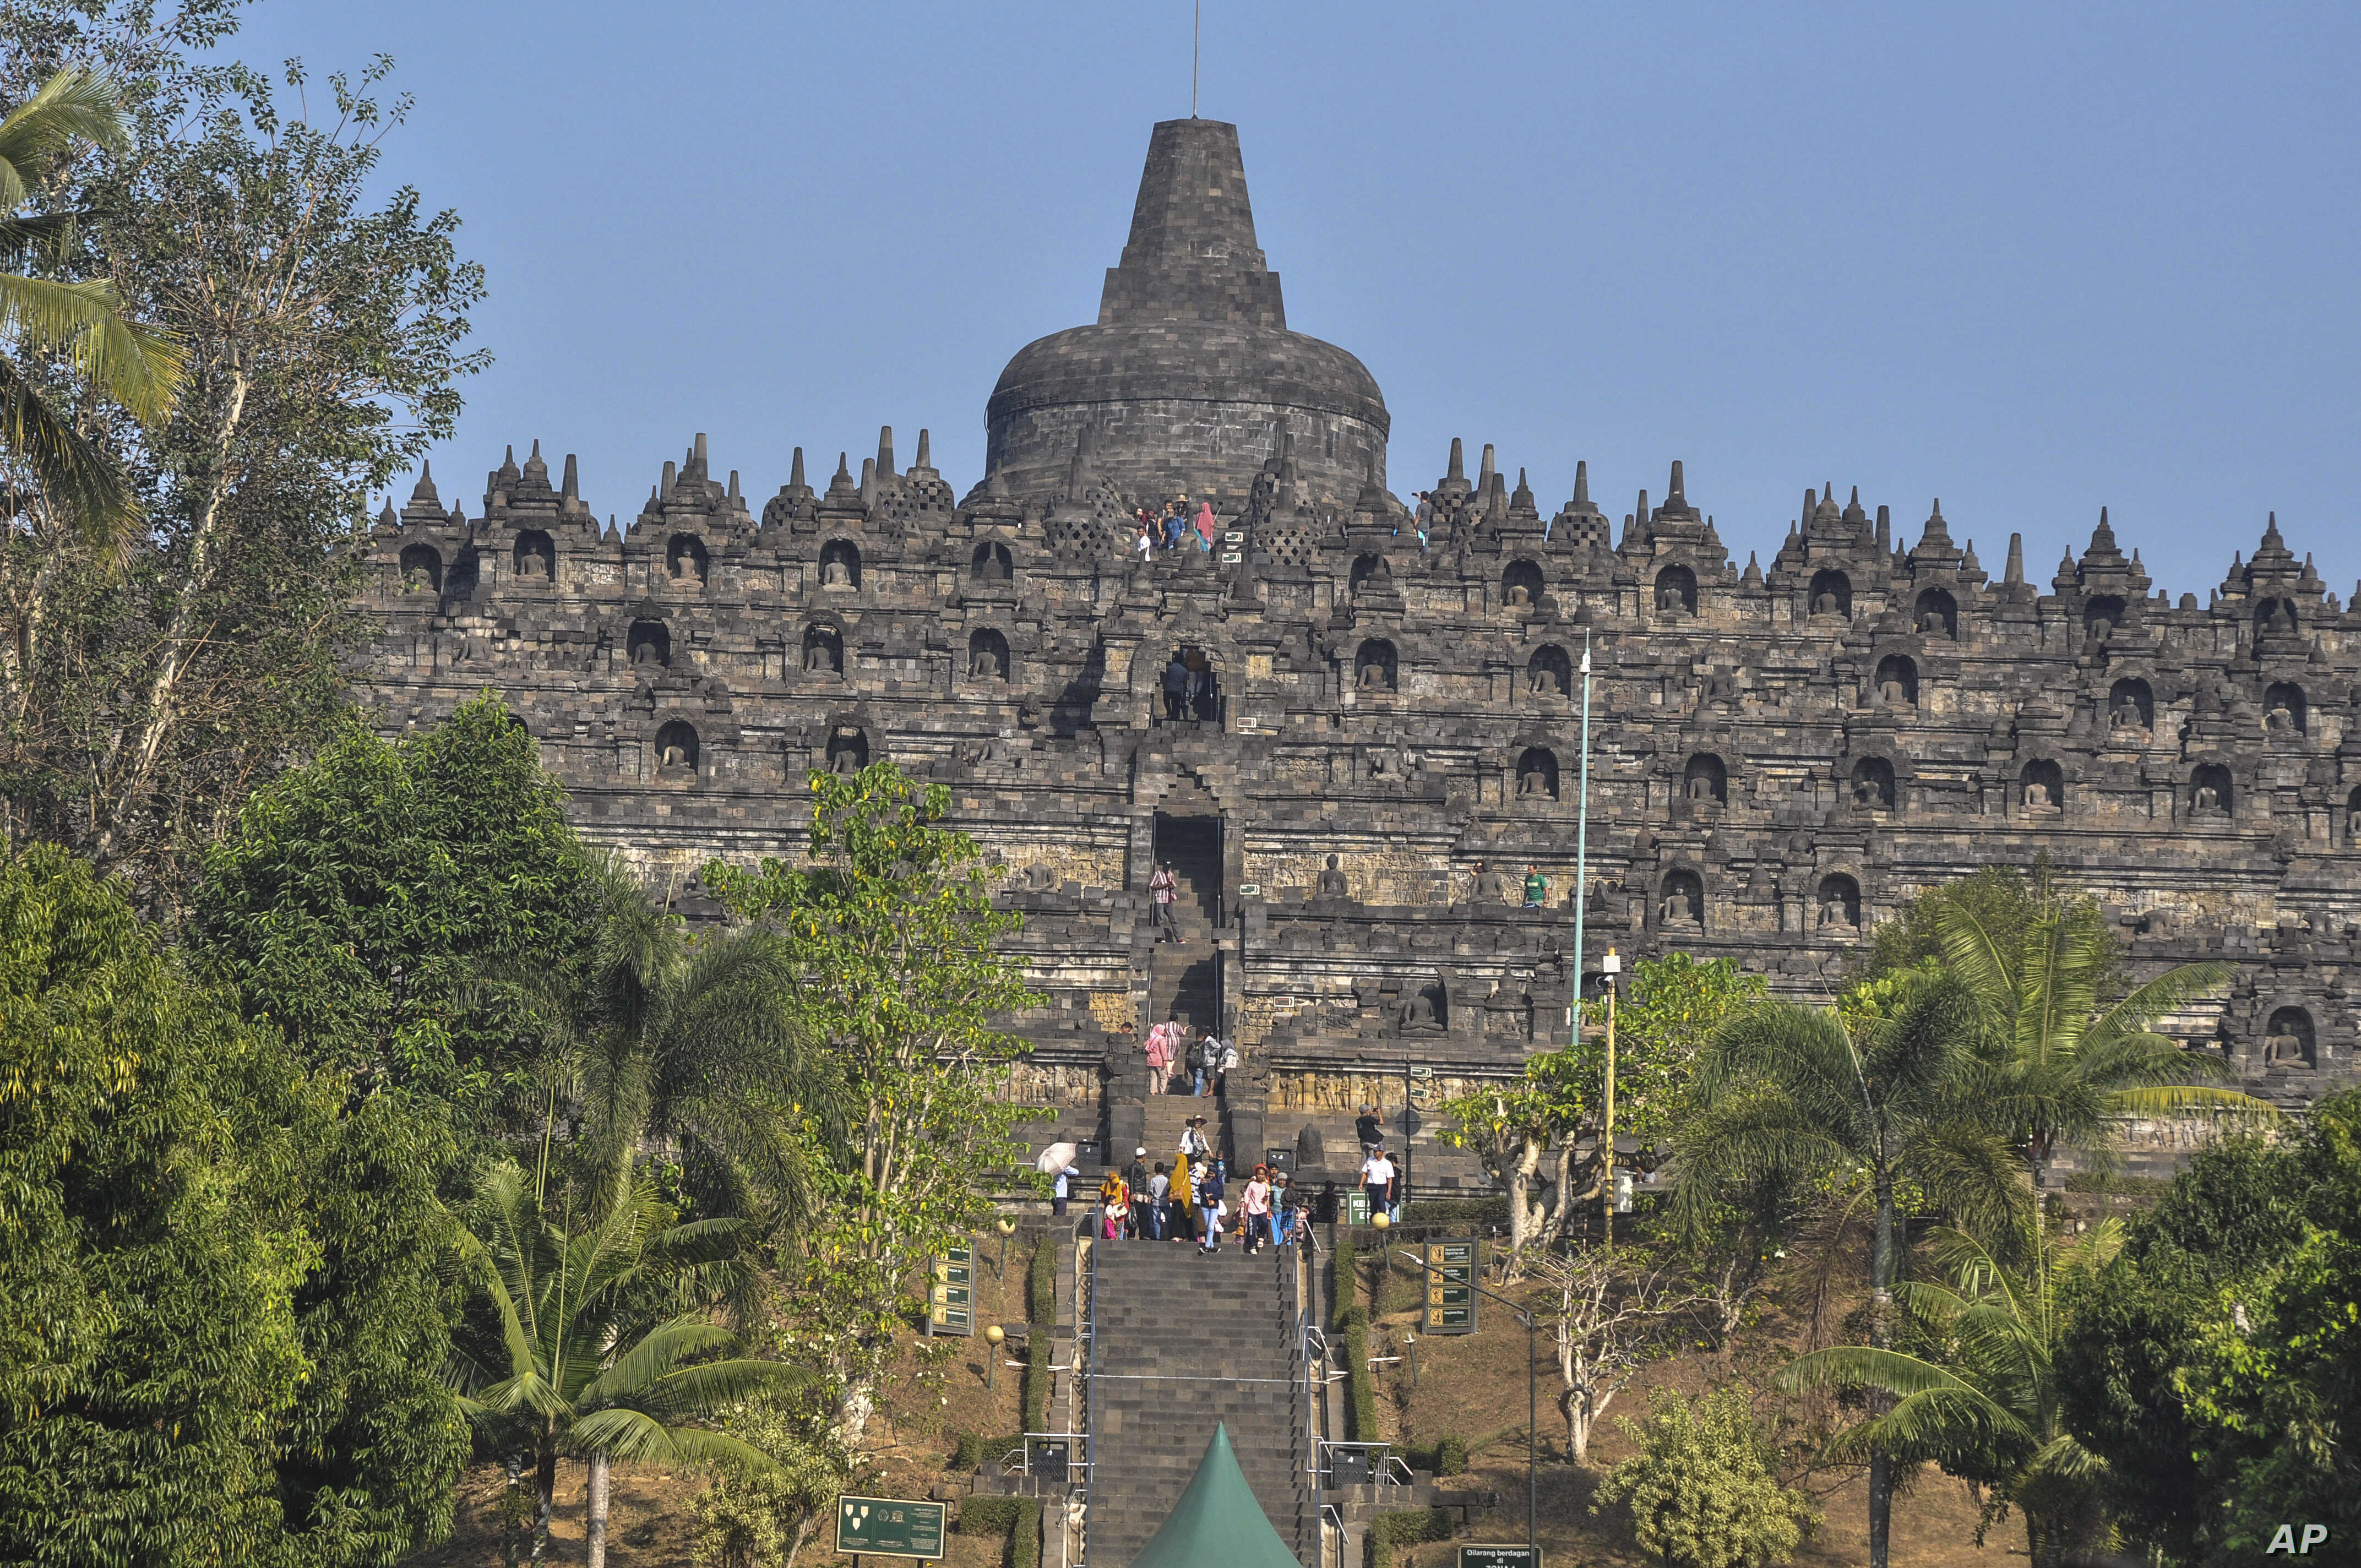 Not Just Bali Indonesia Hopes To Develop More Tourism Sites Voice Of America English